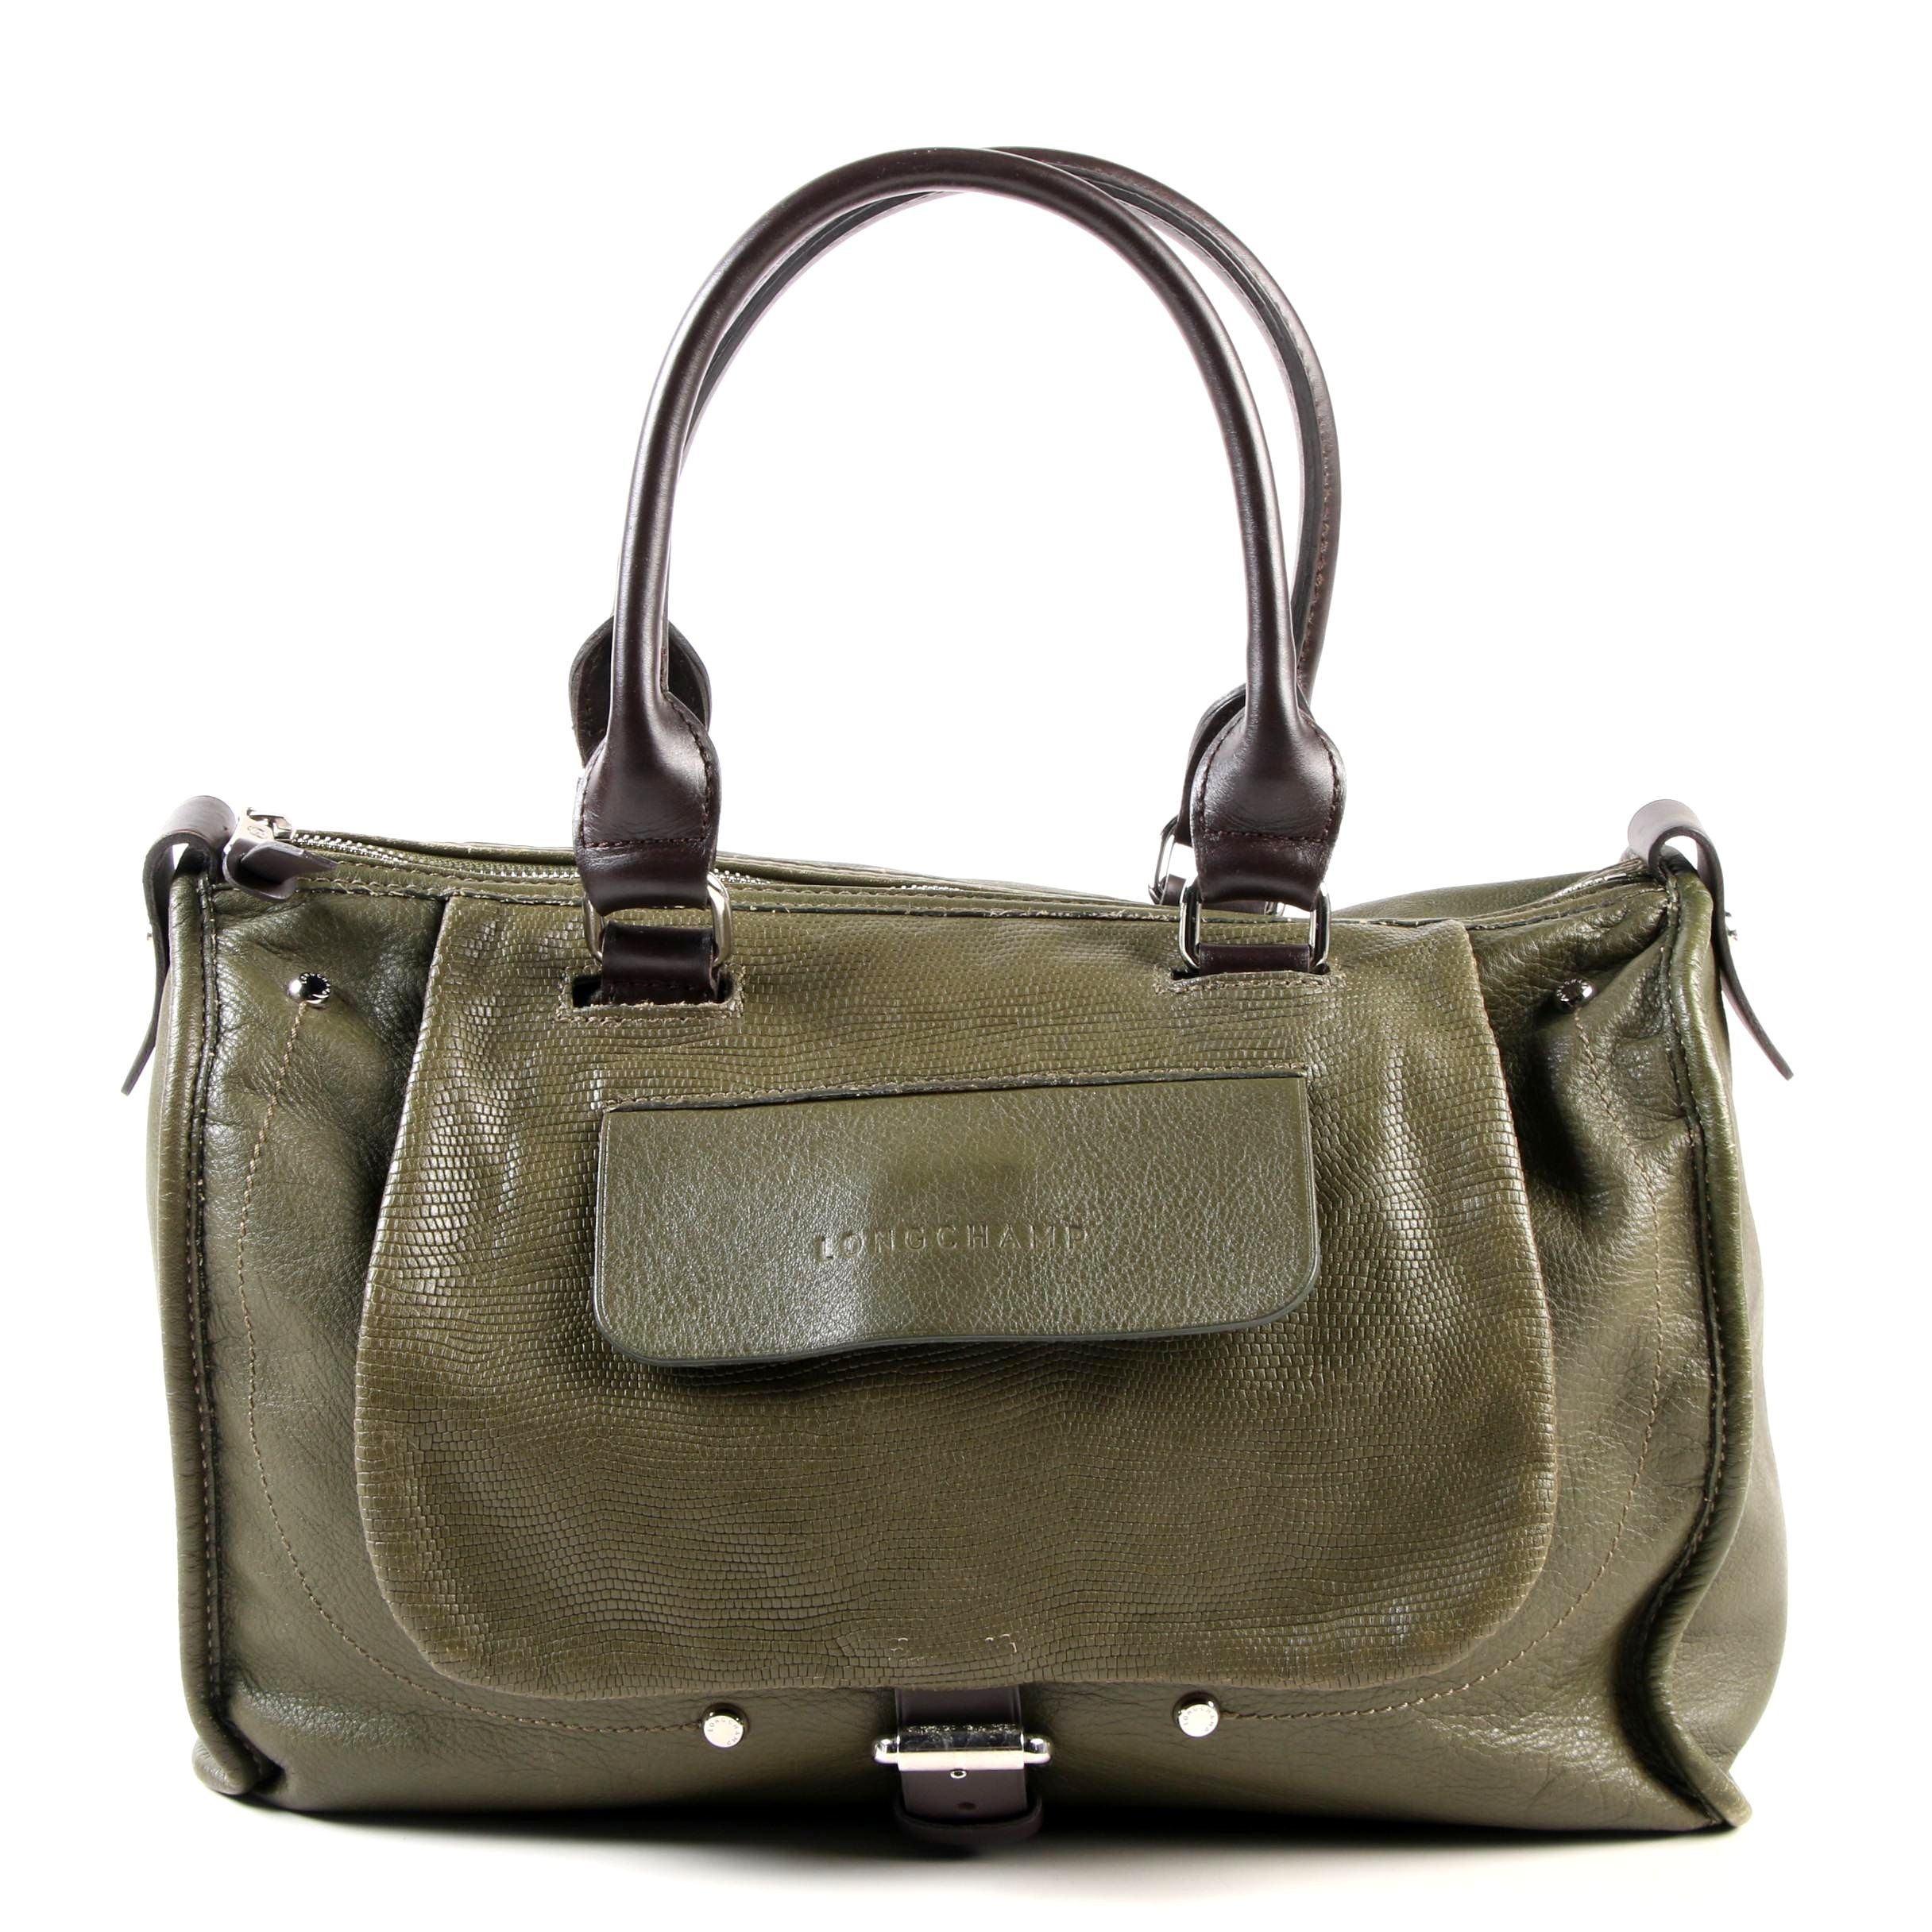 Longchamp Balzane Roots Satchel in Olive Green Leather with Brown Leather Handle